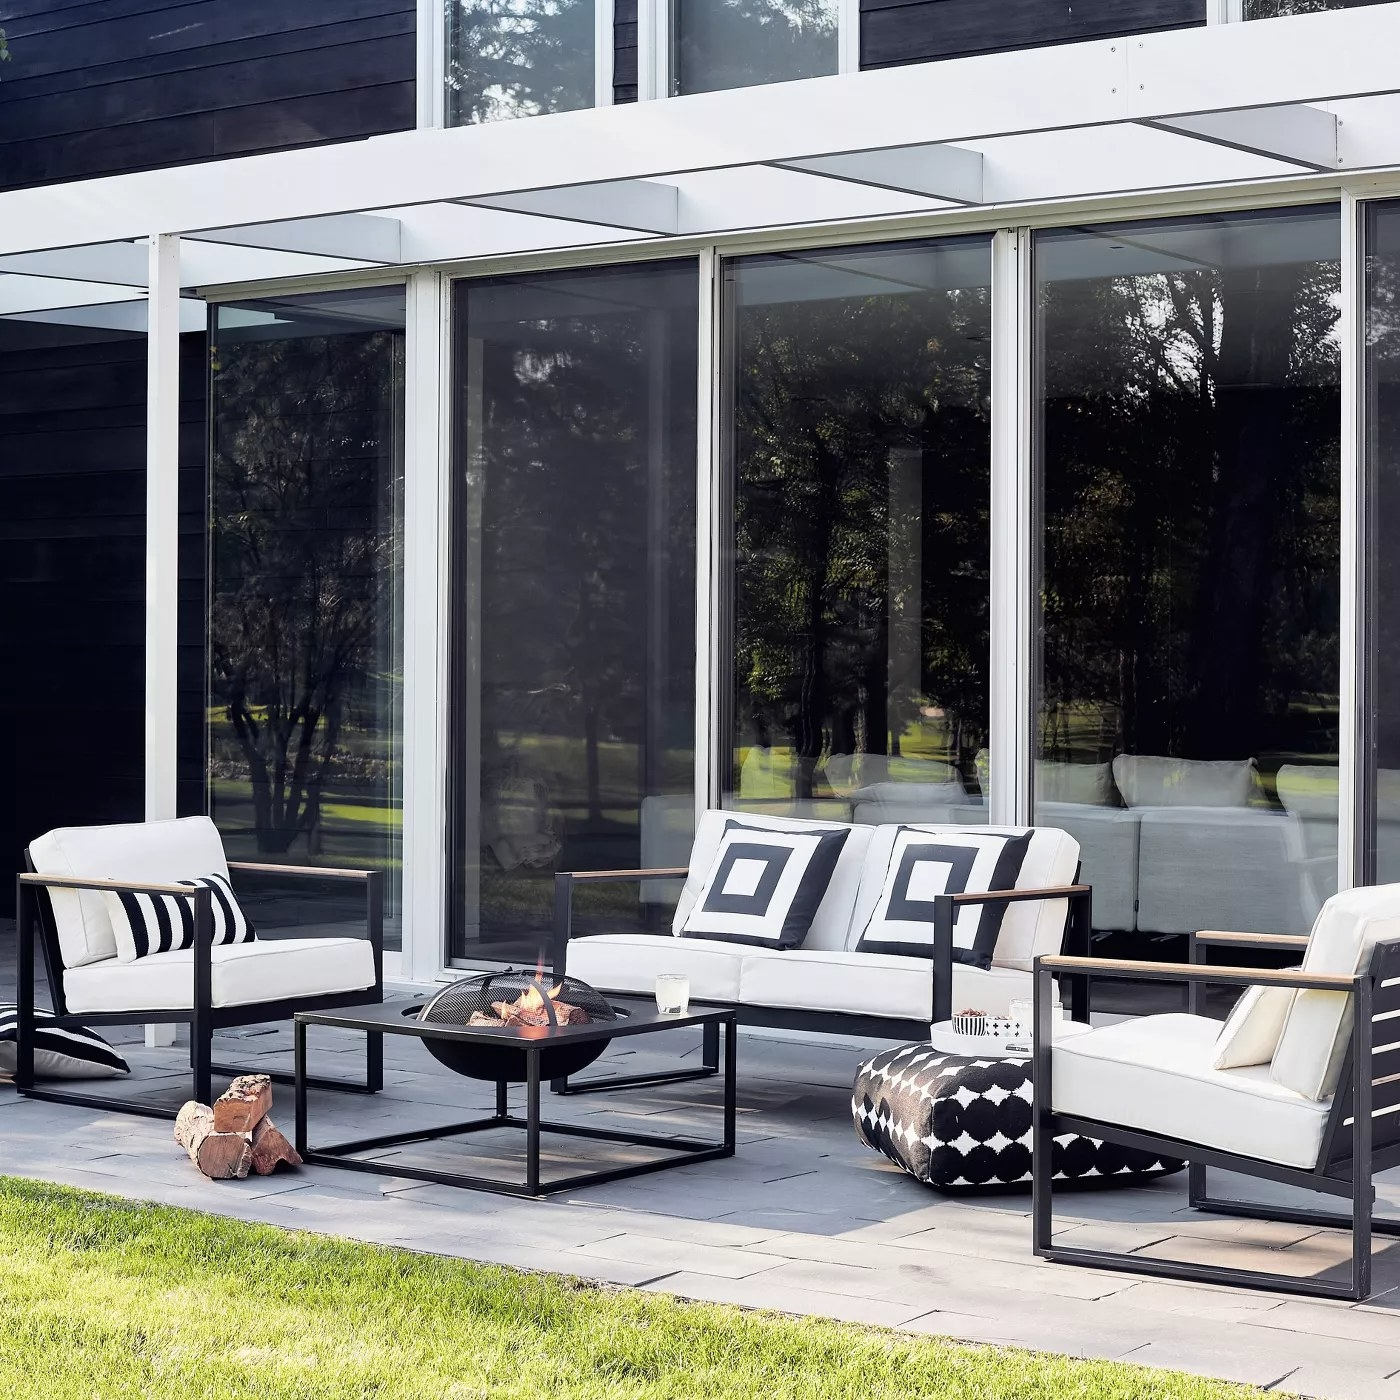 The loveseat with a black metal frame in a backyard with two matching chairs on either side